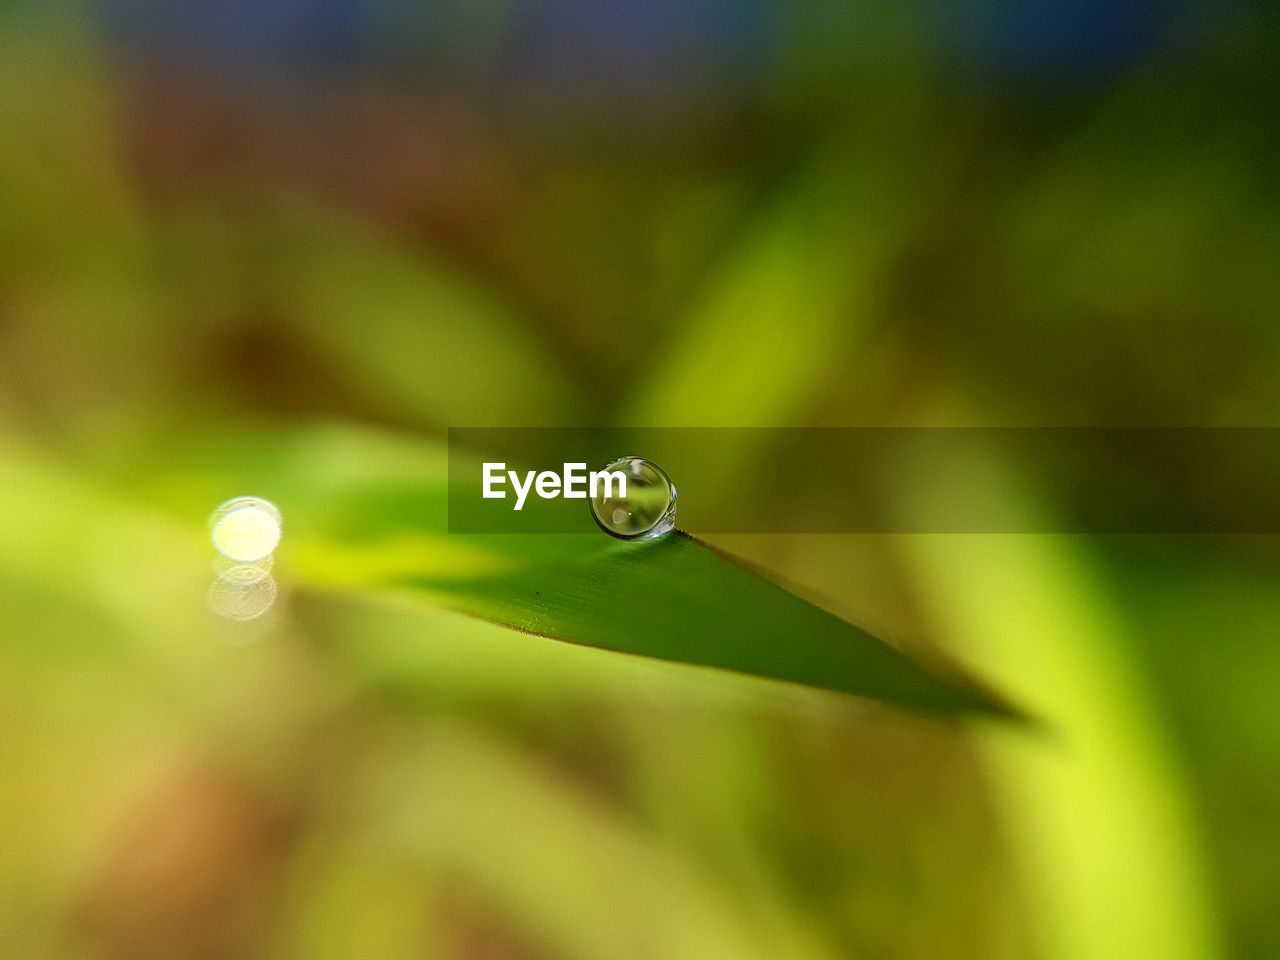 drop, close-up, green color, water, no people, selective focus, growth, plant, beauty in nature, nature, vulnerability, wet, fragility, focus on foreground, freshness, purity, day, plant part, leaf, dew, outdoors, blade of grass, raindrop